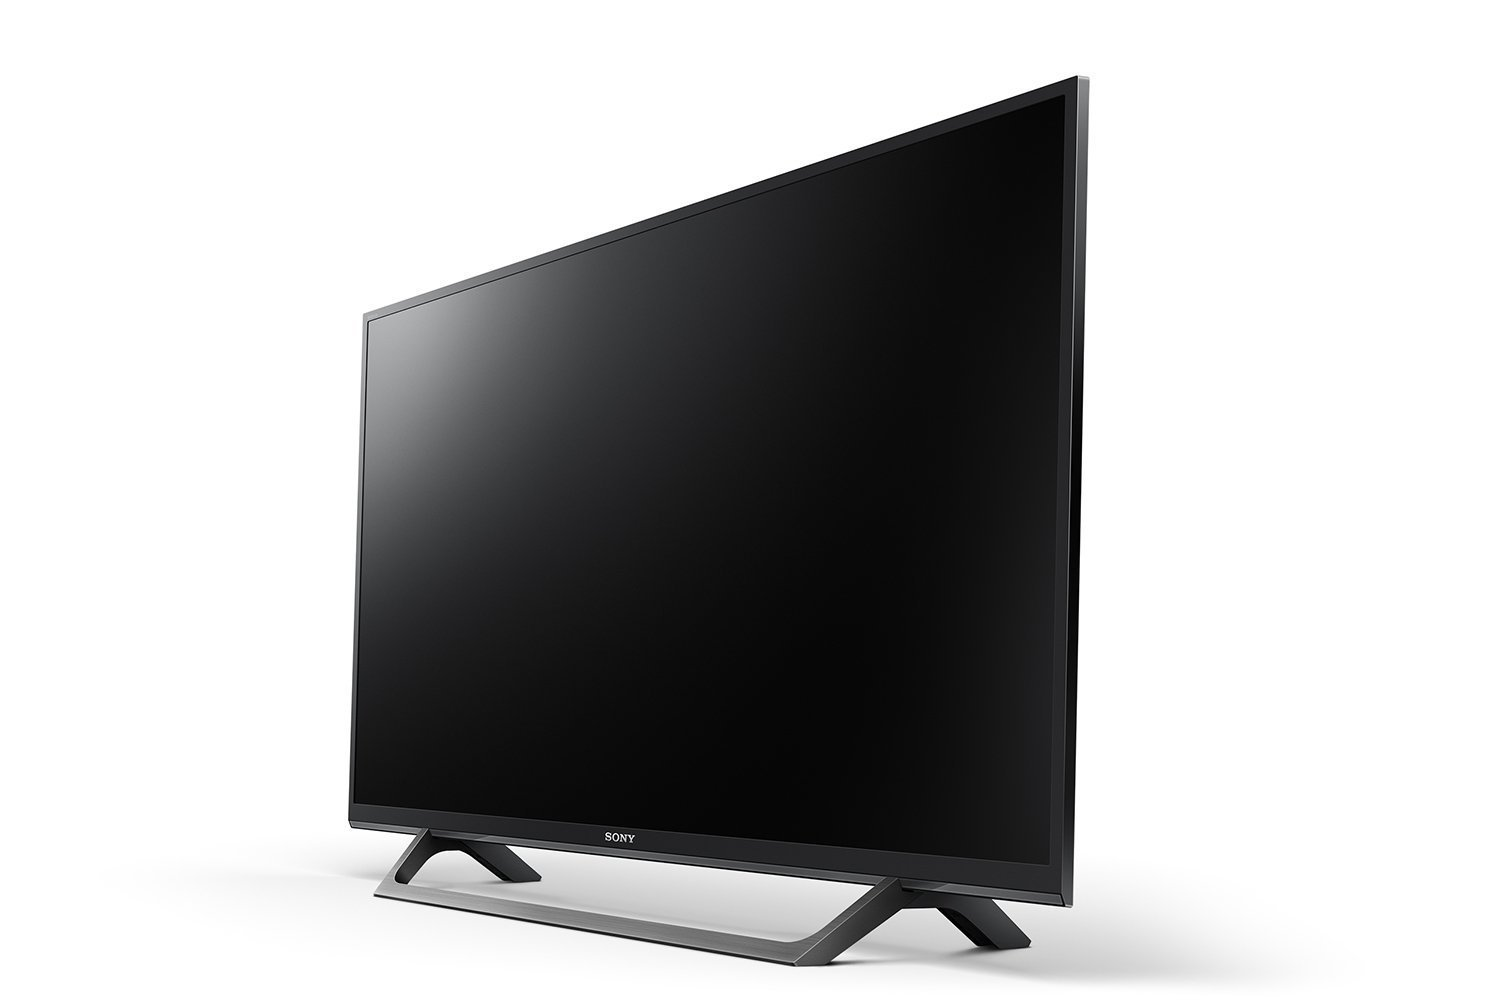 Sony 80.1 Cm (32 Inches) Bravia KLV-W672E Full HD LED Smart TV (Black) (32)